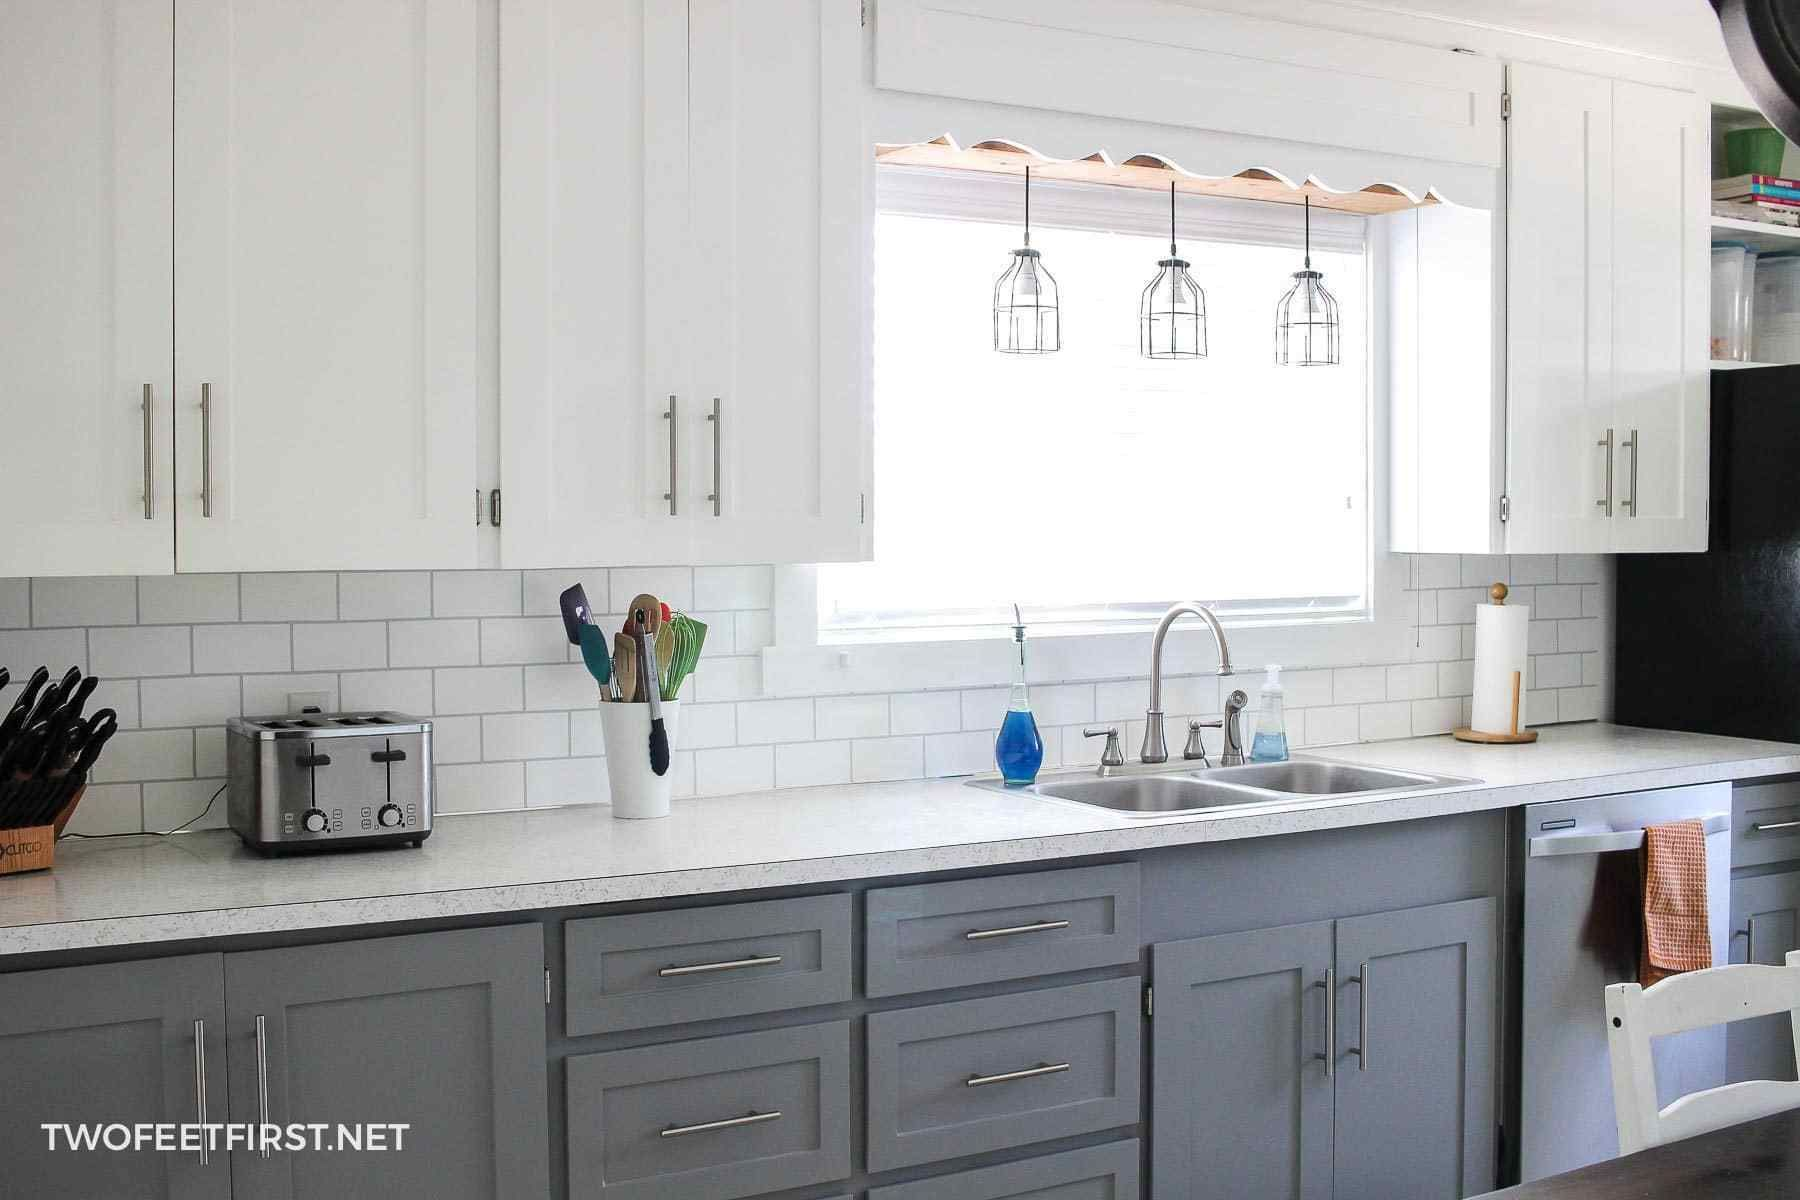 Update Kitchen Cabinets for Cheap - Update kitchen cabinets, Old kitchen cabinets, Kitchen cabinets makeover, Updated kitchen, Kitchen renovation, Diy kitchen cabinets - Are you wondering how to update your kitchen cabinets on a budget  This is a simple way to make your cabinets look modern with paint and trim